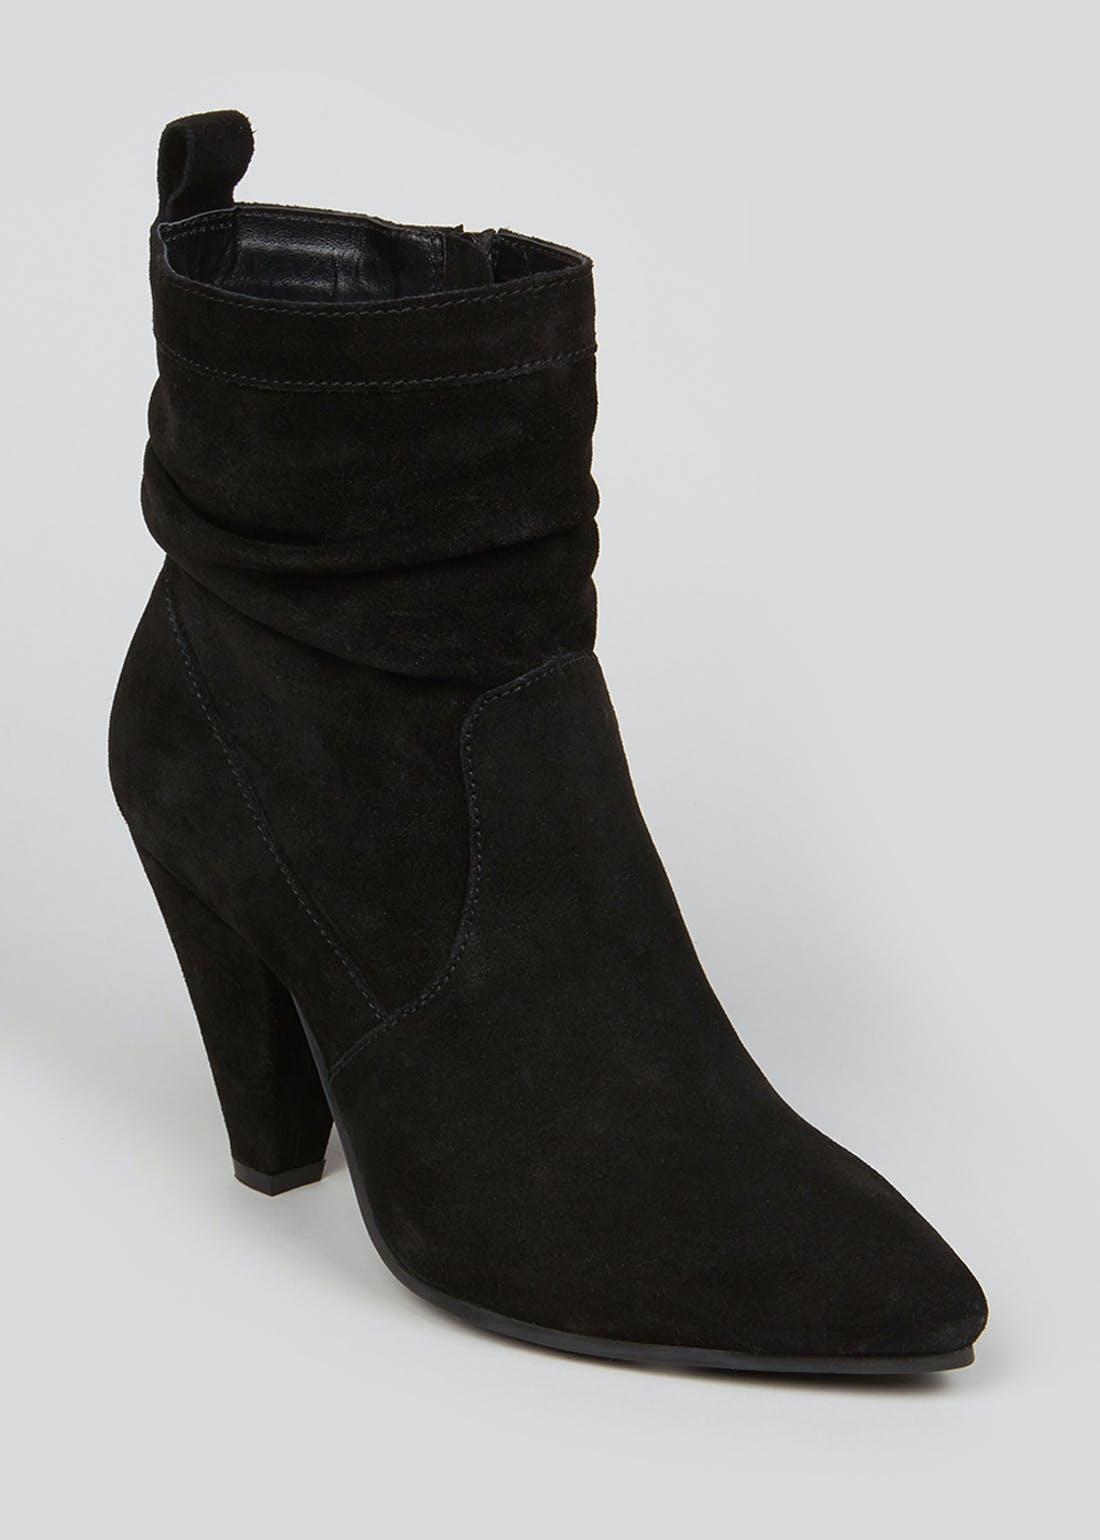 Soleflex Black Real Suede Slouch Boots